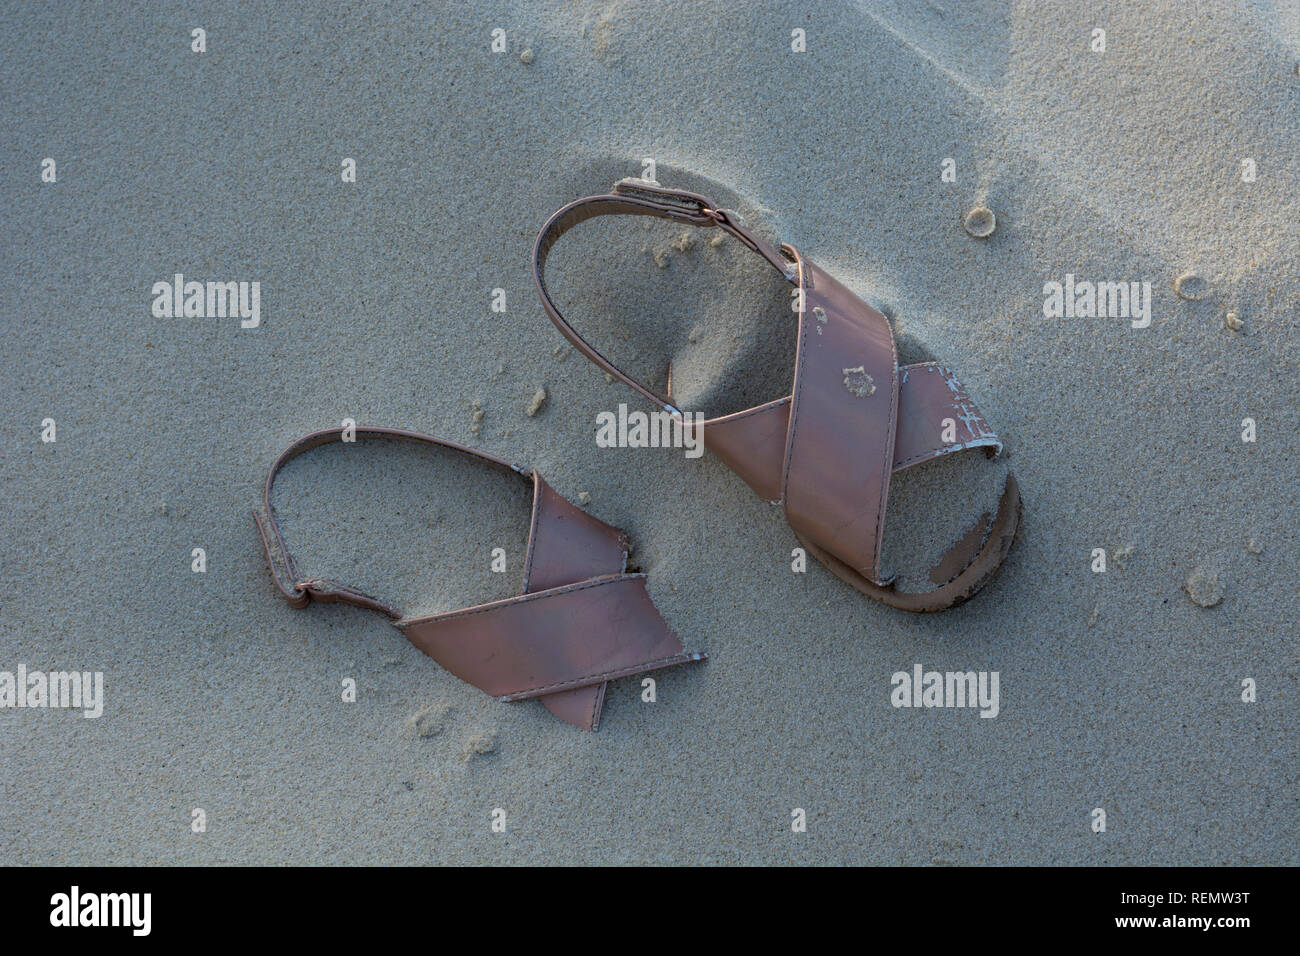 Abandoned pink sandals on a beach - Stock Image